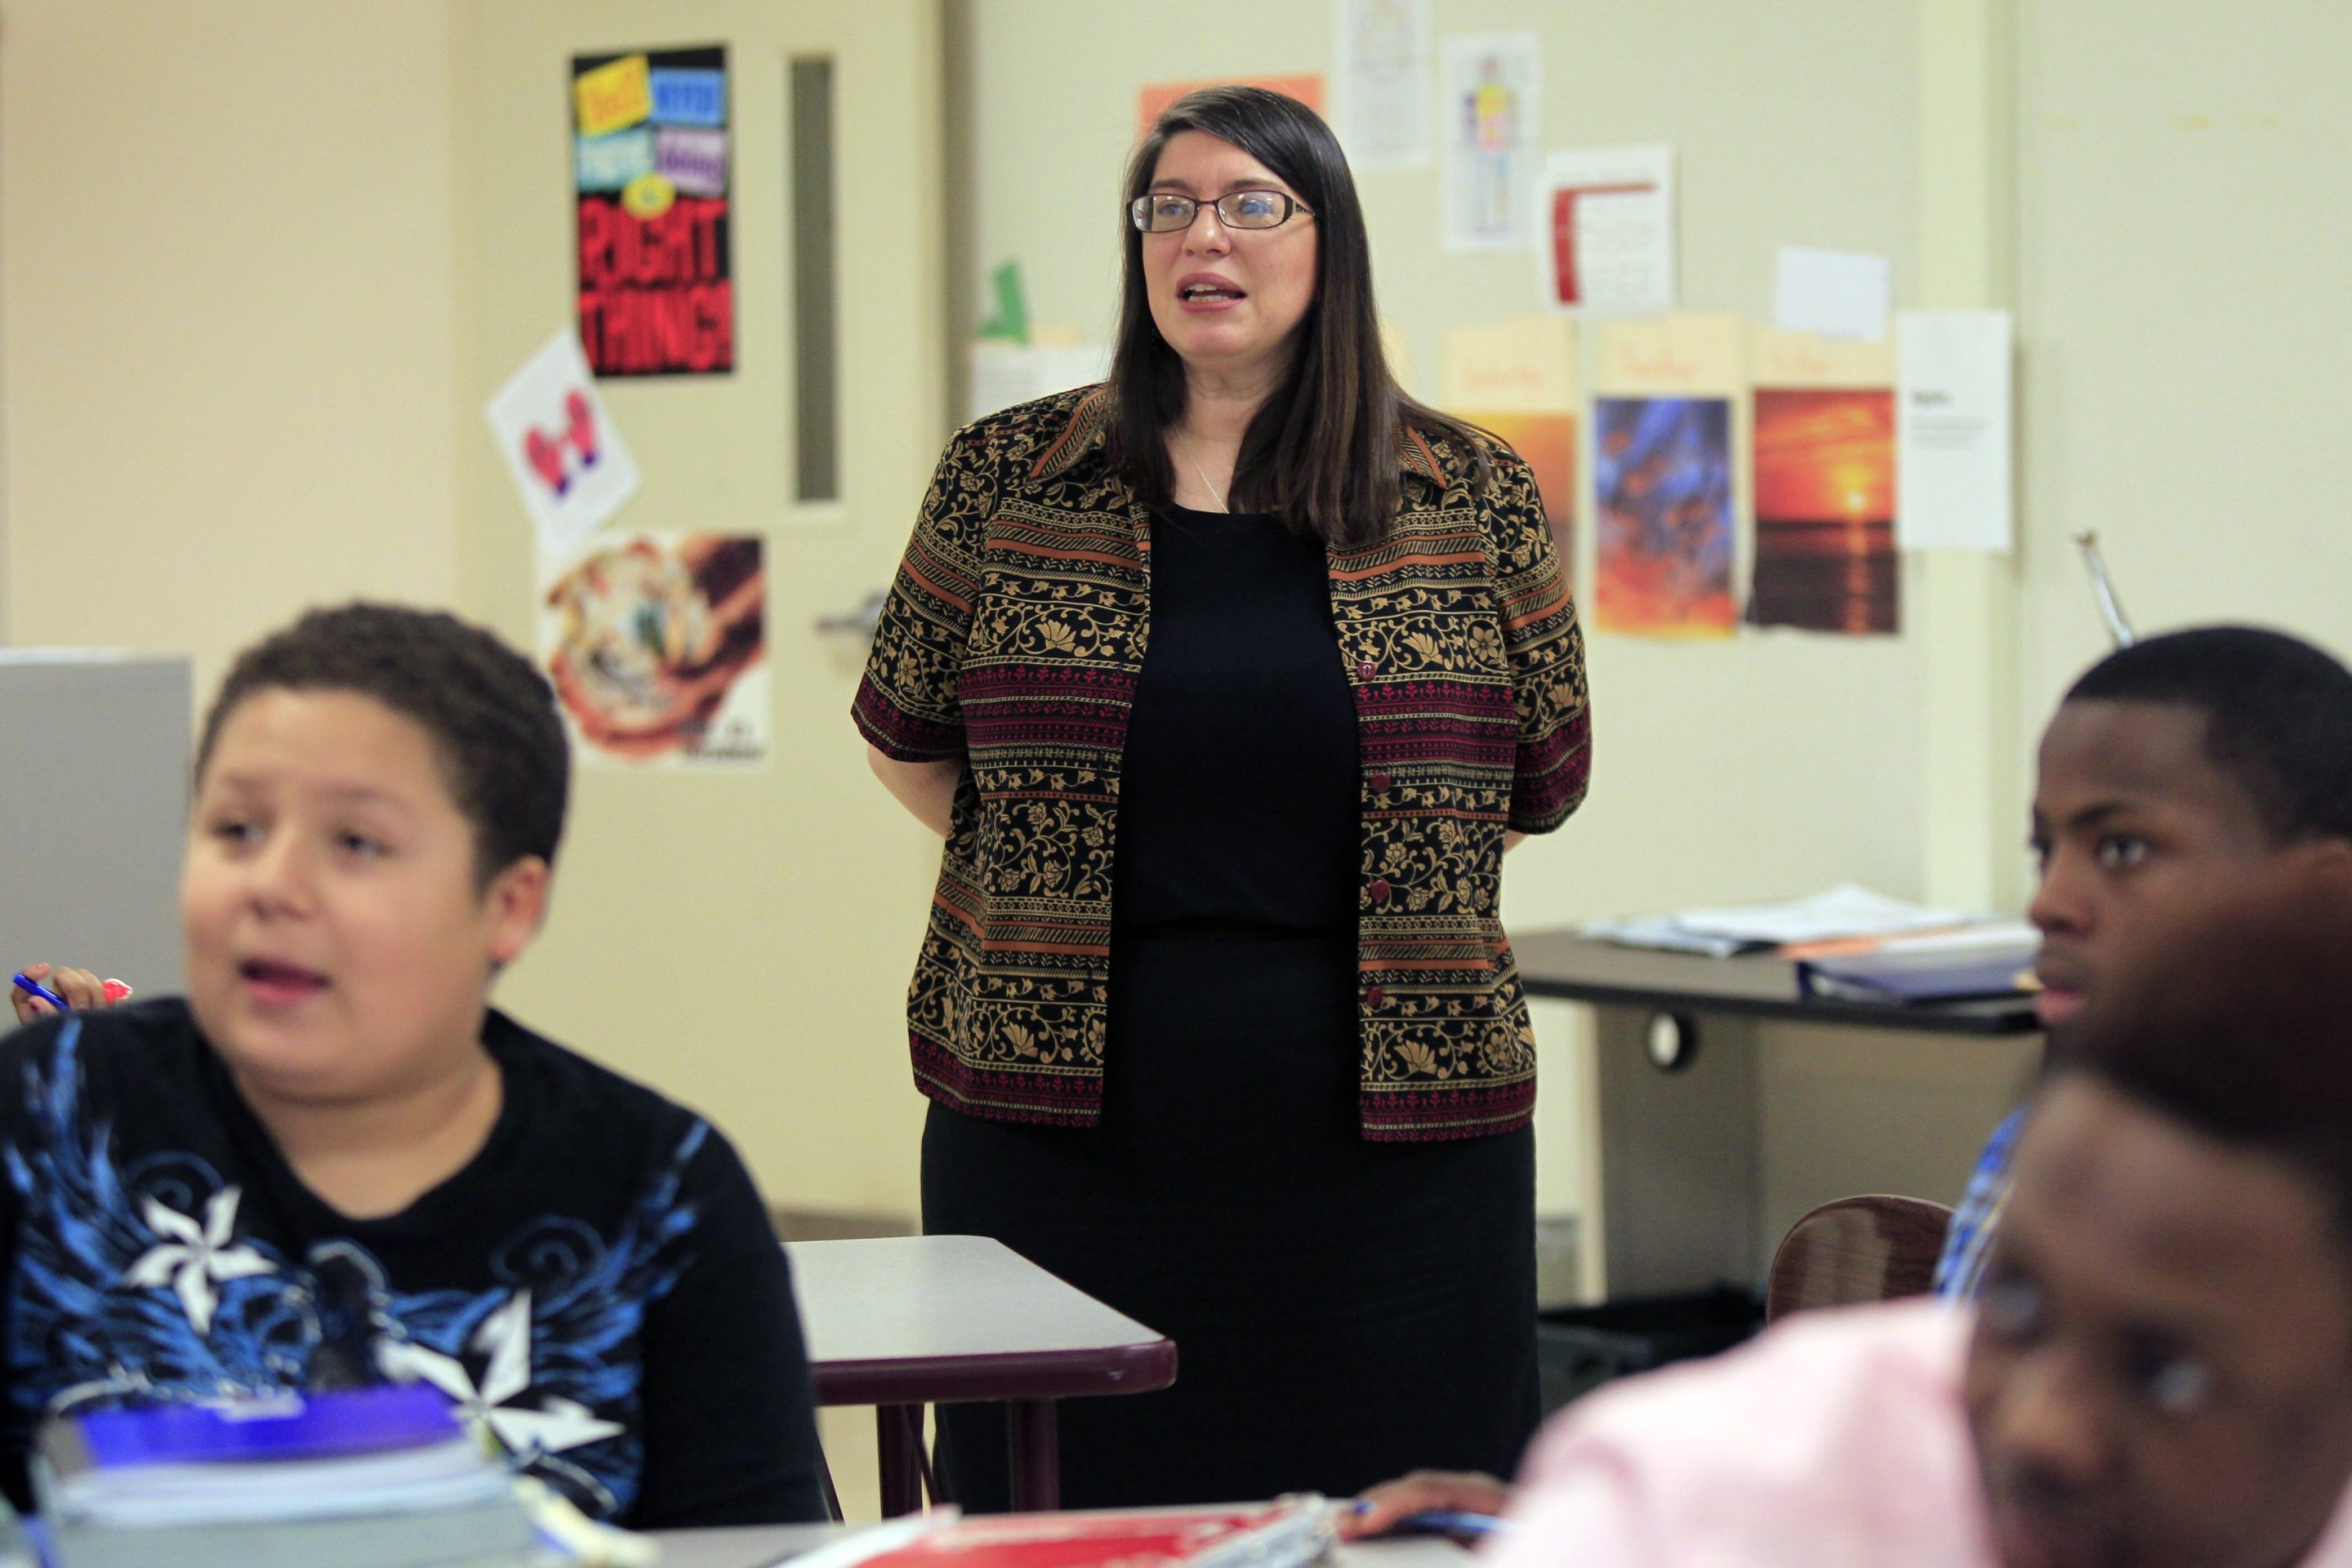 Mary Dileas is a veteran math teacher with more than 20 years of experience. The Emerson School ofHospitality teacher is one of four Buffalo Public Schools teachers who have recently earned the National Board for Professional Teaching Standards certification.